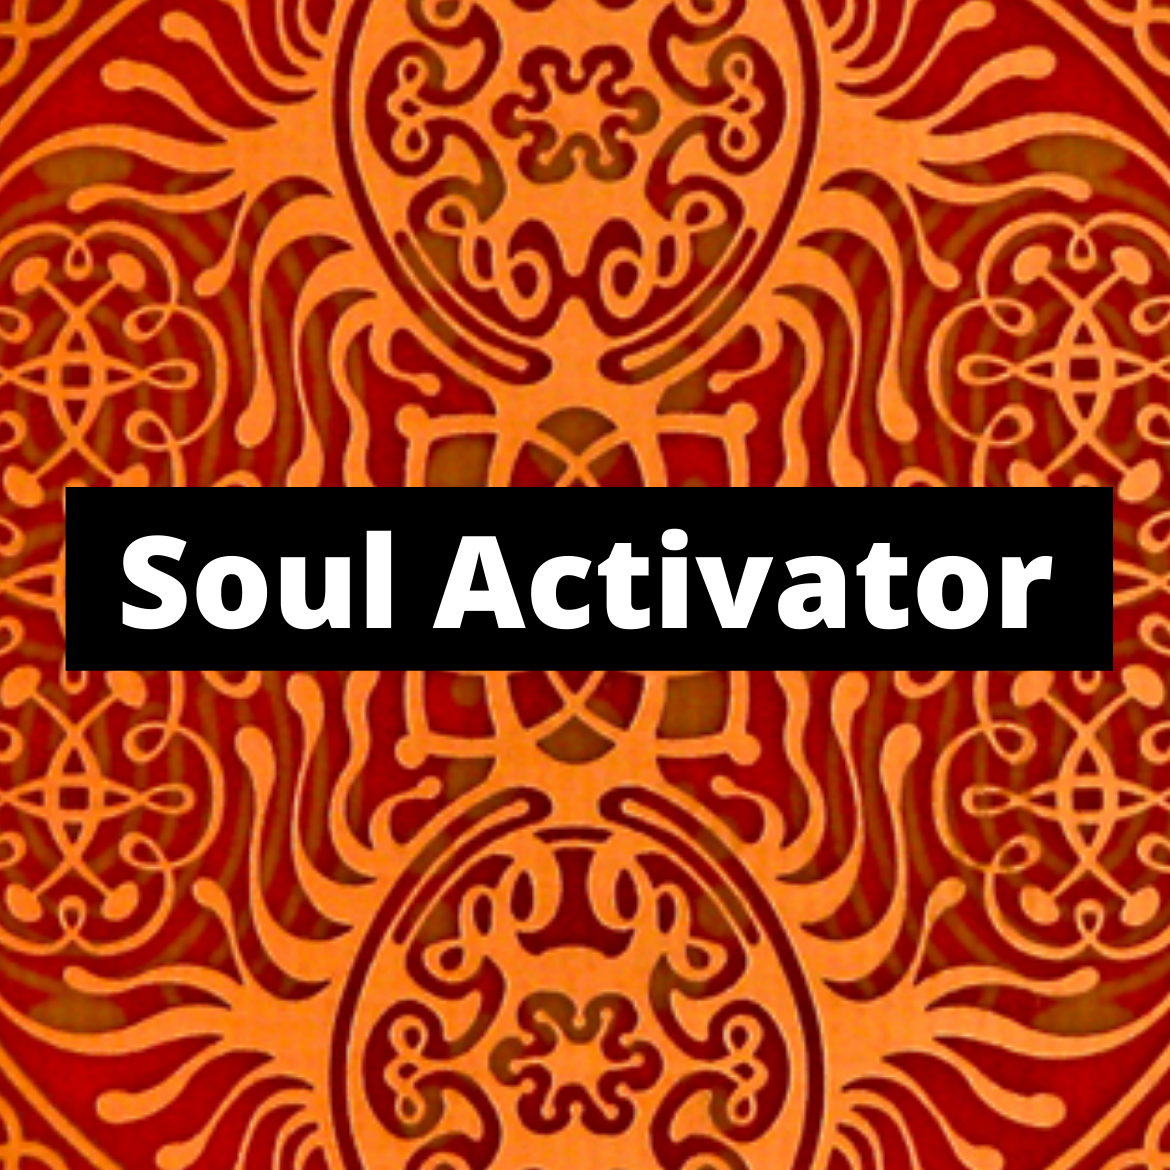 Powerforms Soul Activator